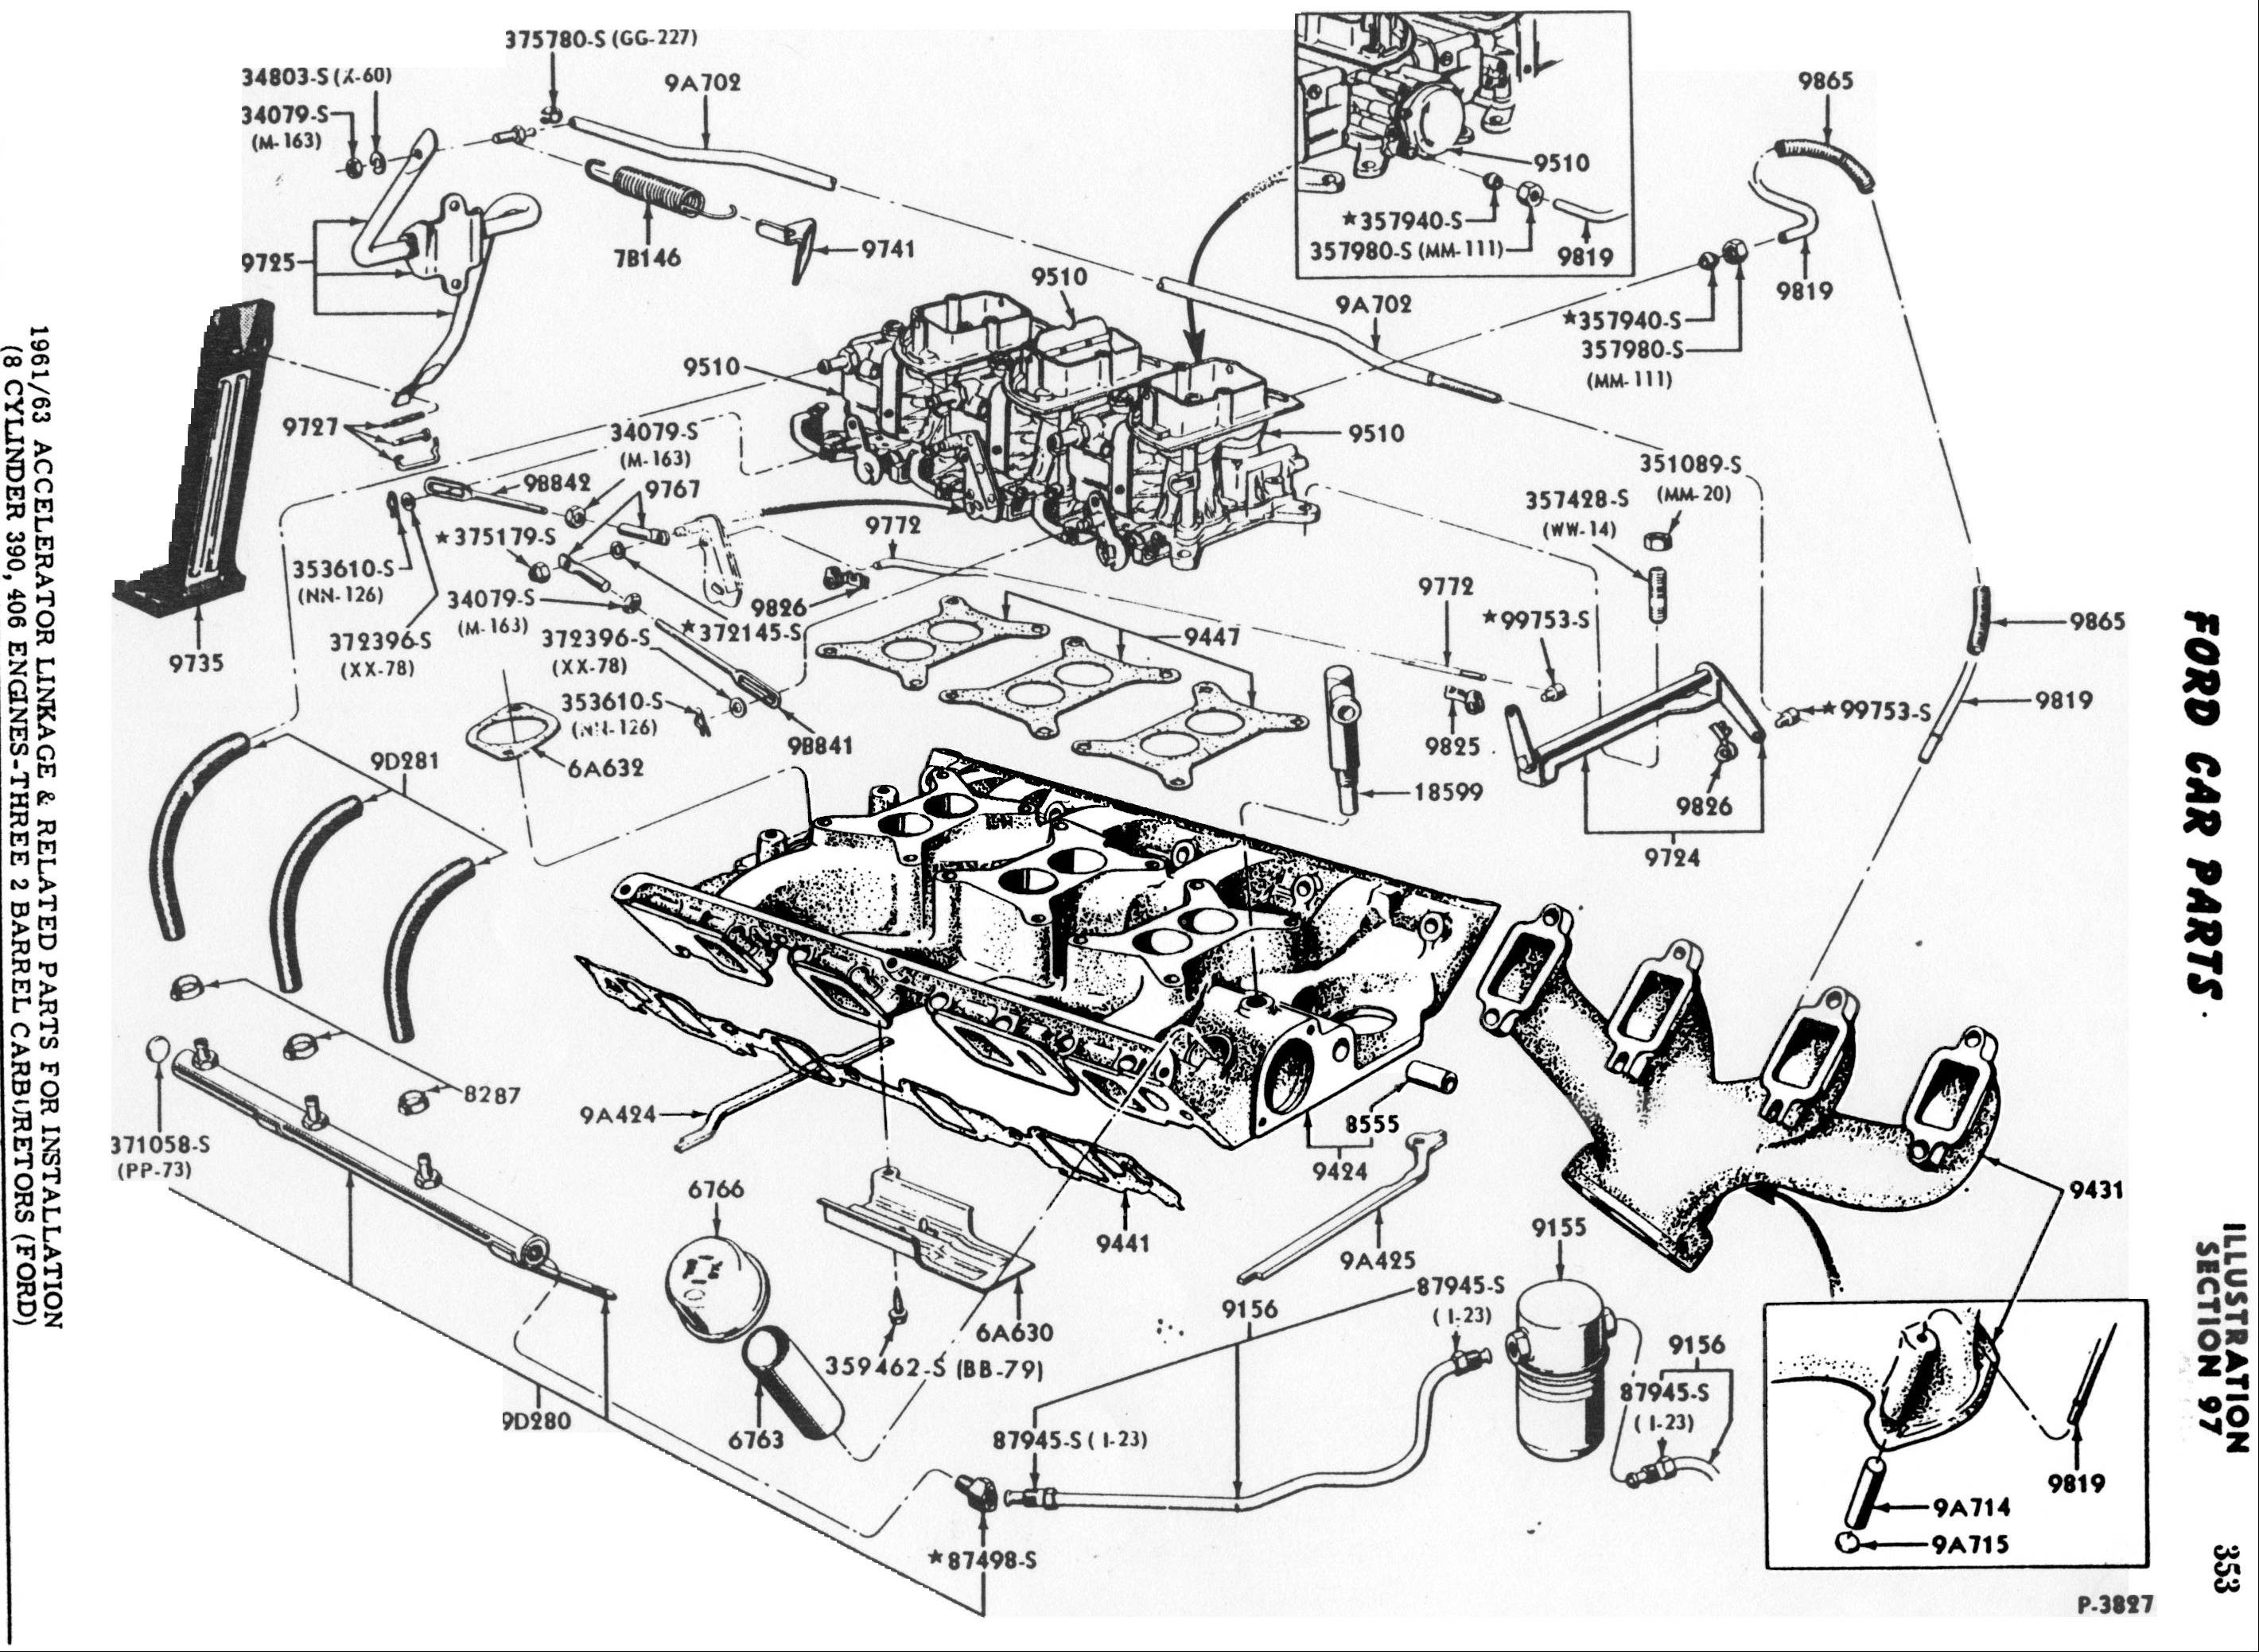 1990 honda accord engine diagram 460 ford engine diagram wiring info of 1990 honda accord